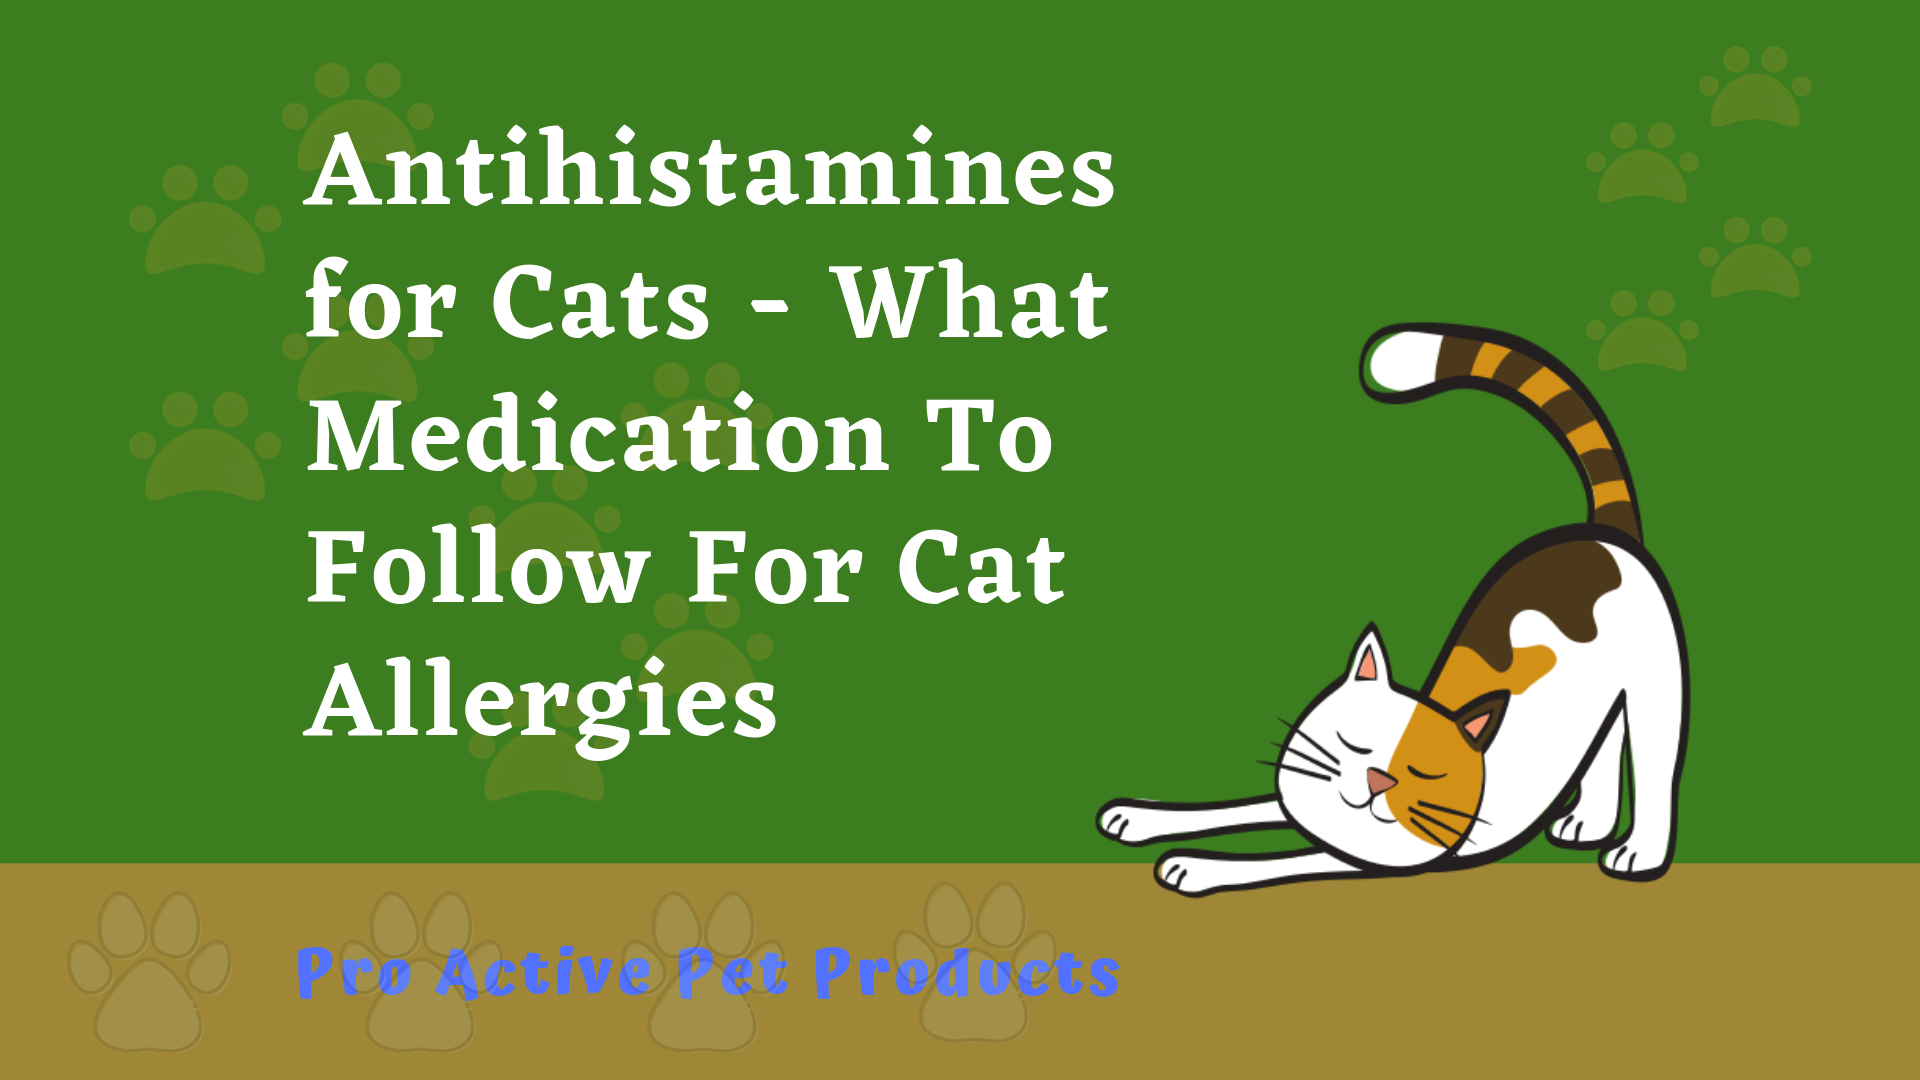 Antihistamines for Cats Sneezing - What You Need To Know!